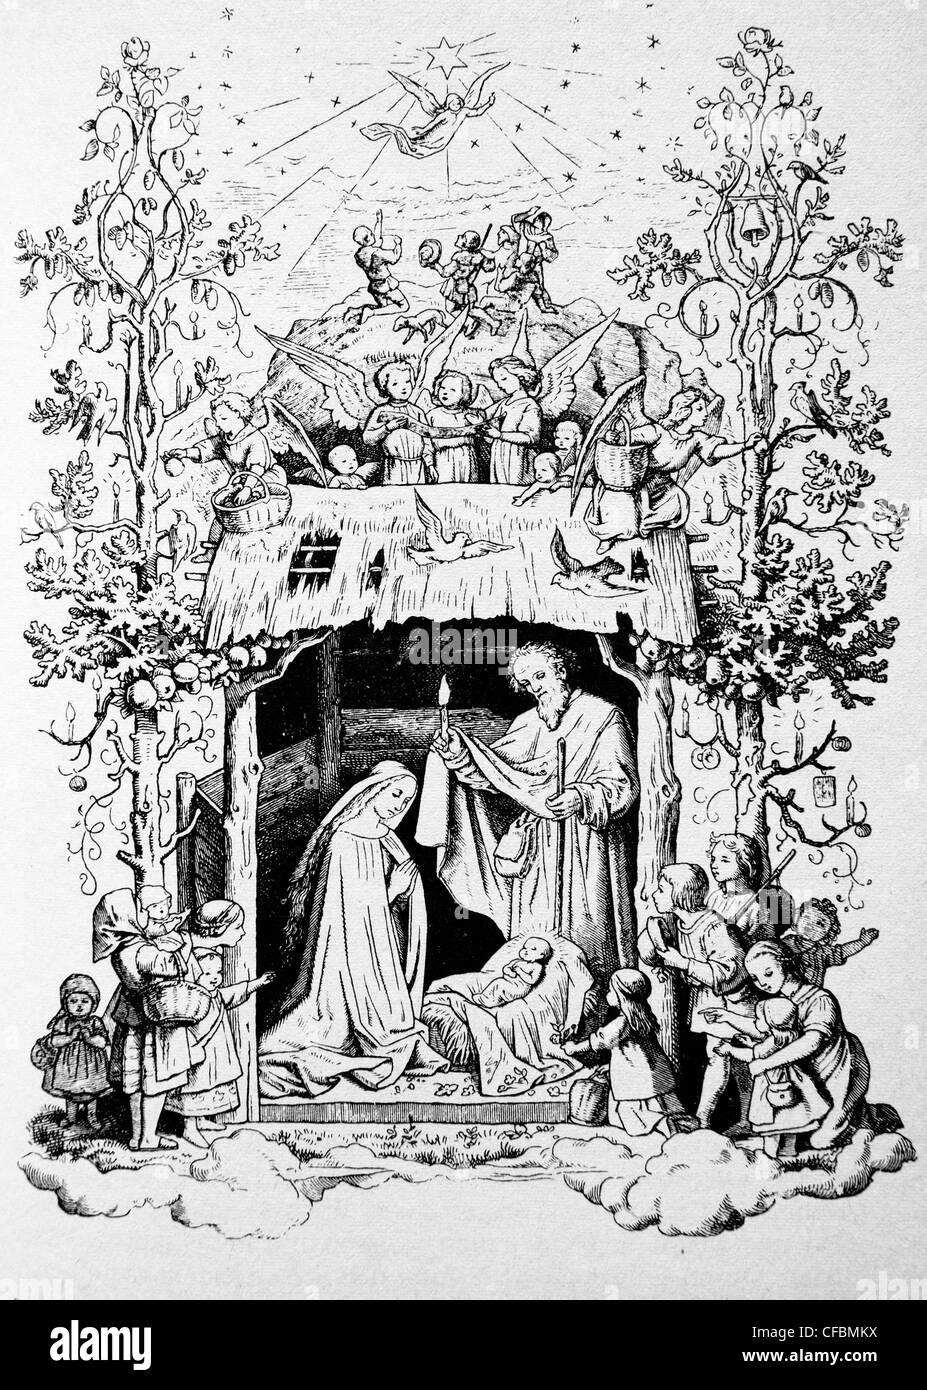 crib - christmas - bethlehem - old lithography - Stock Image